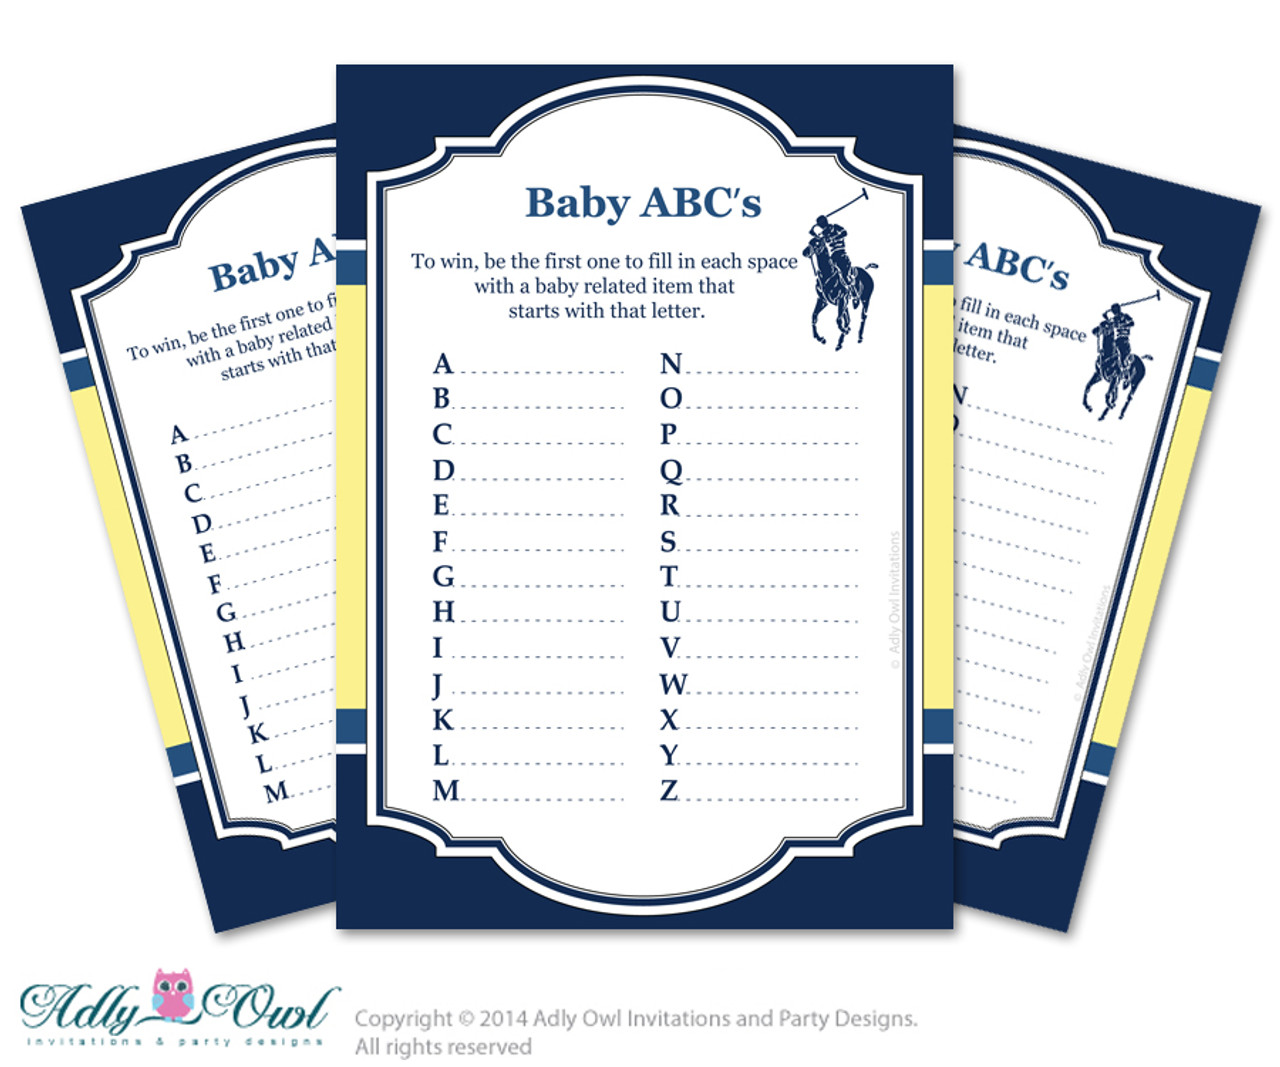 Boy Polo Baby ABCu0027s Game, Guess Animals Printable Card For Baby Polo Shower  DIY Navy